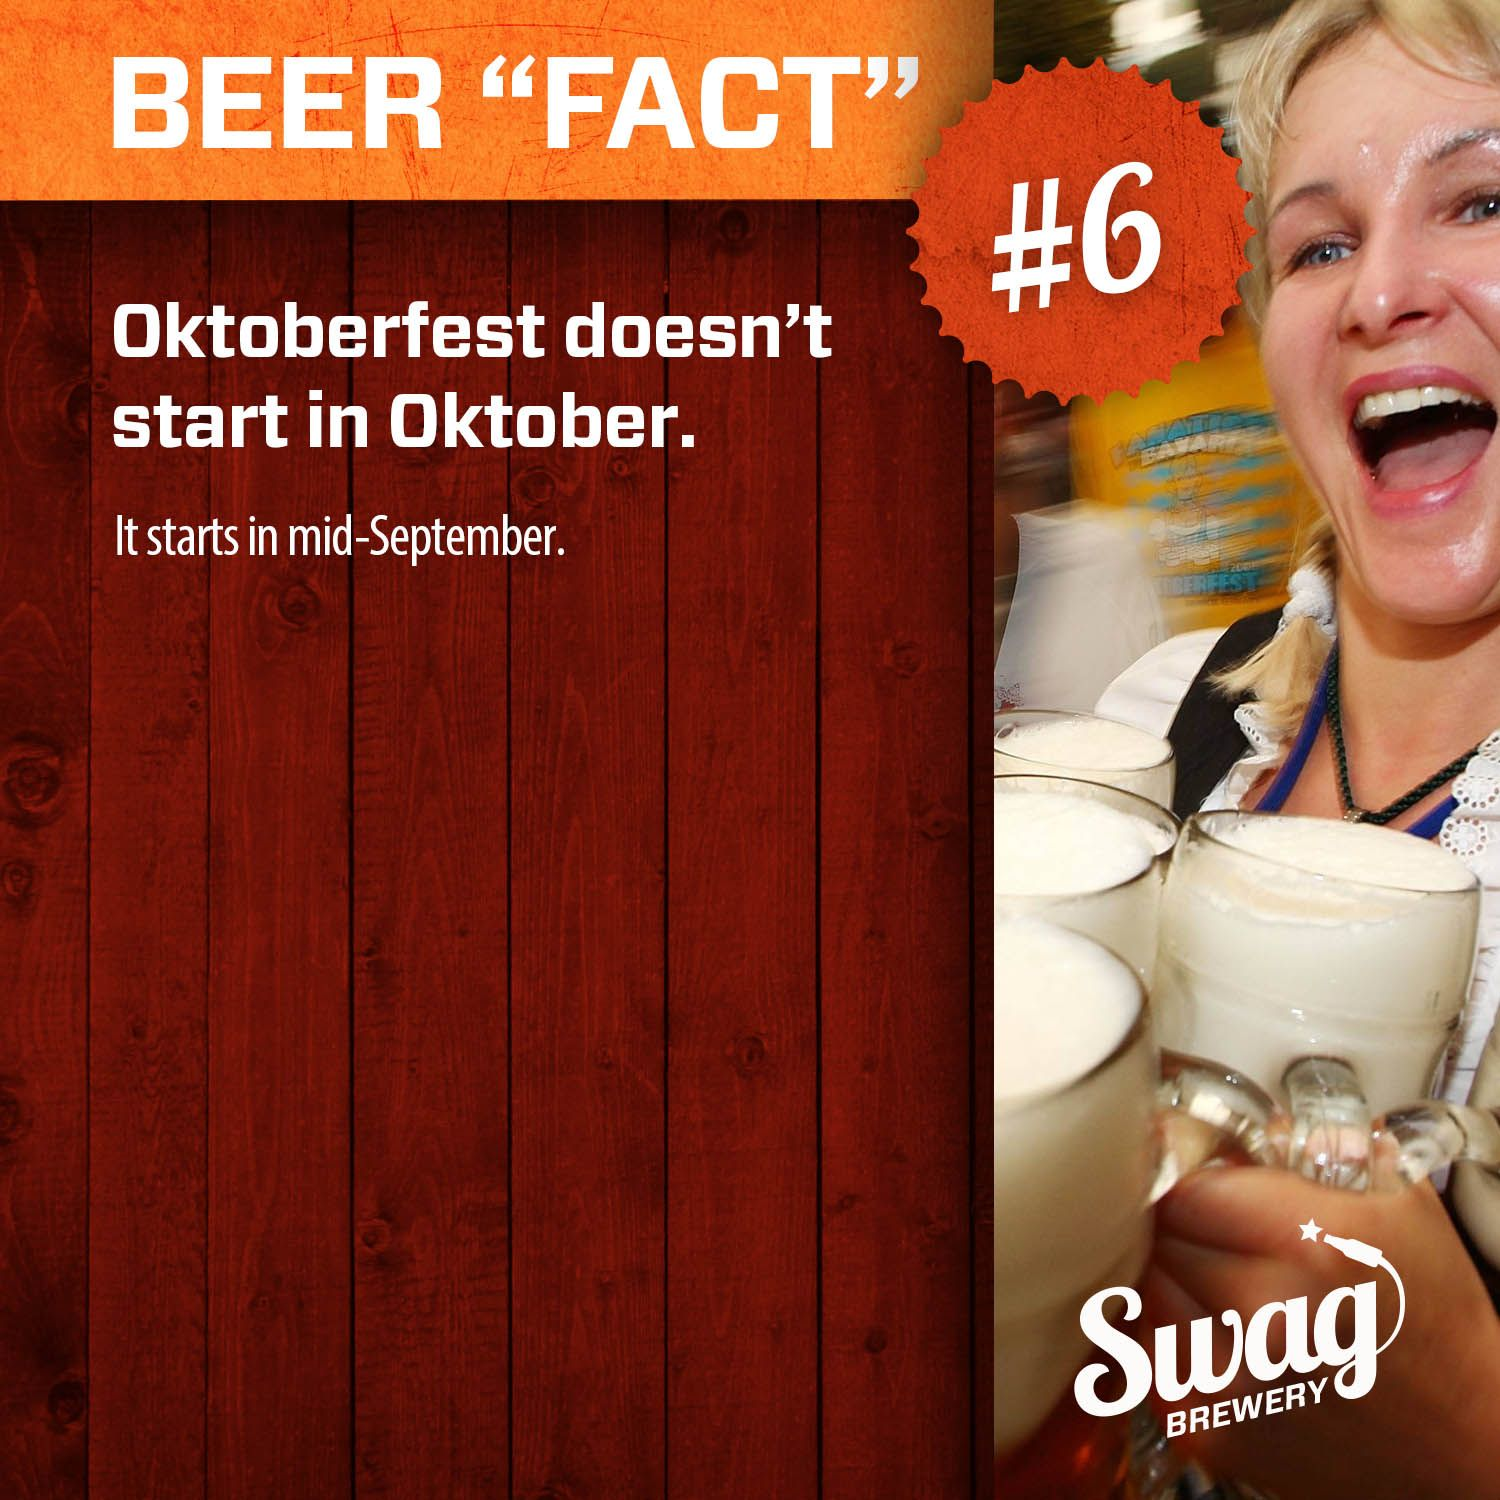 """Beer """"Fact"""" #6. More at: http://www.swagbrewery.com/blogs/beer-facts"""